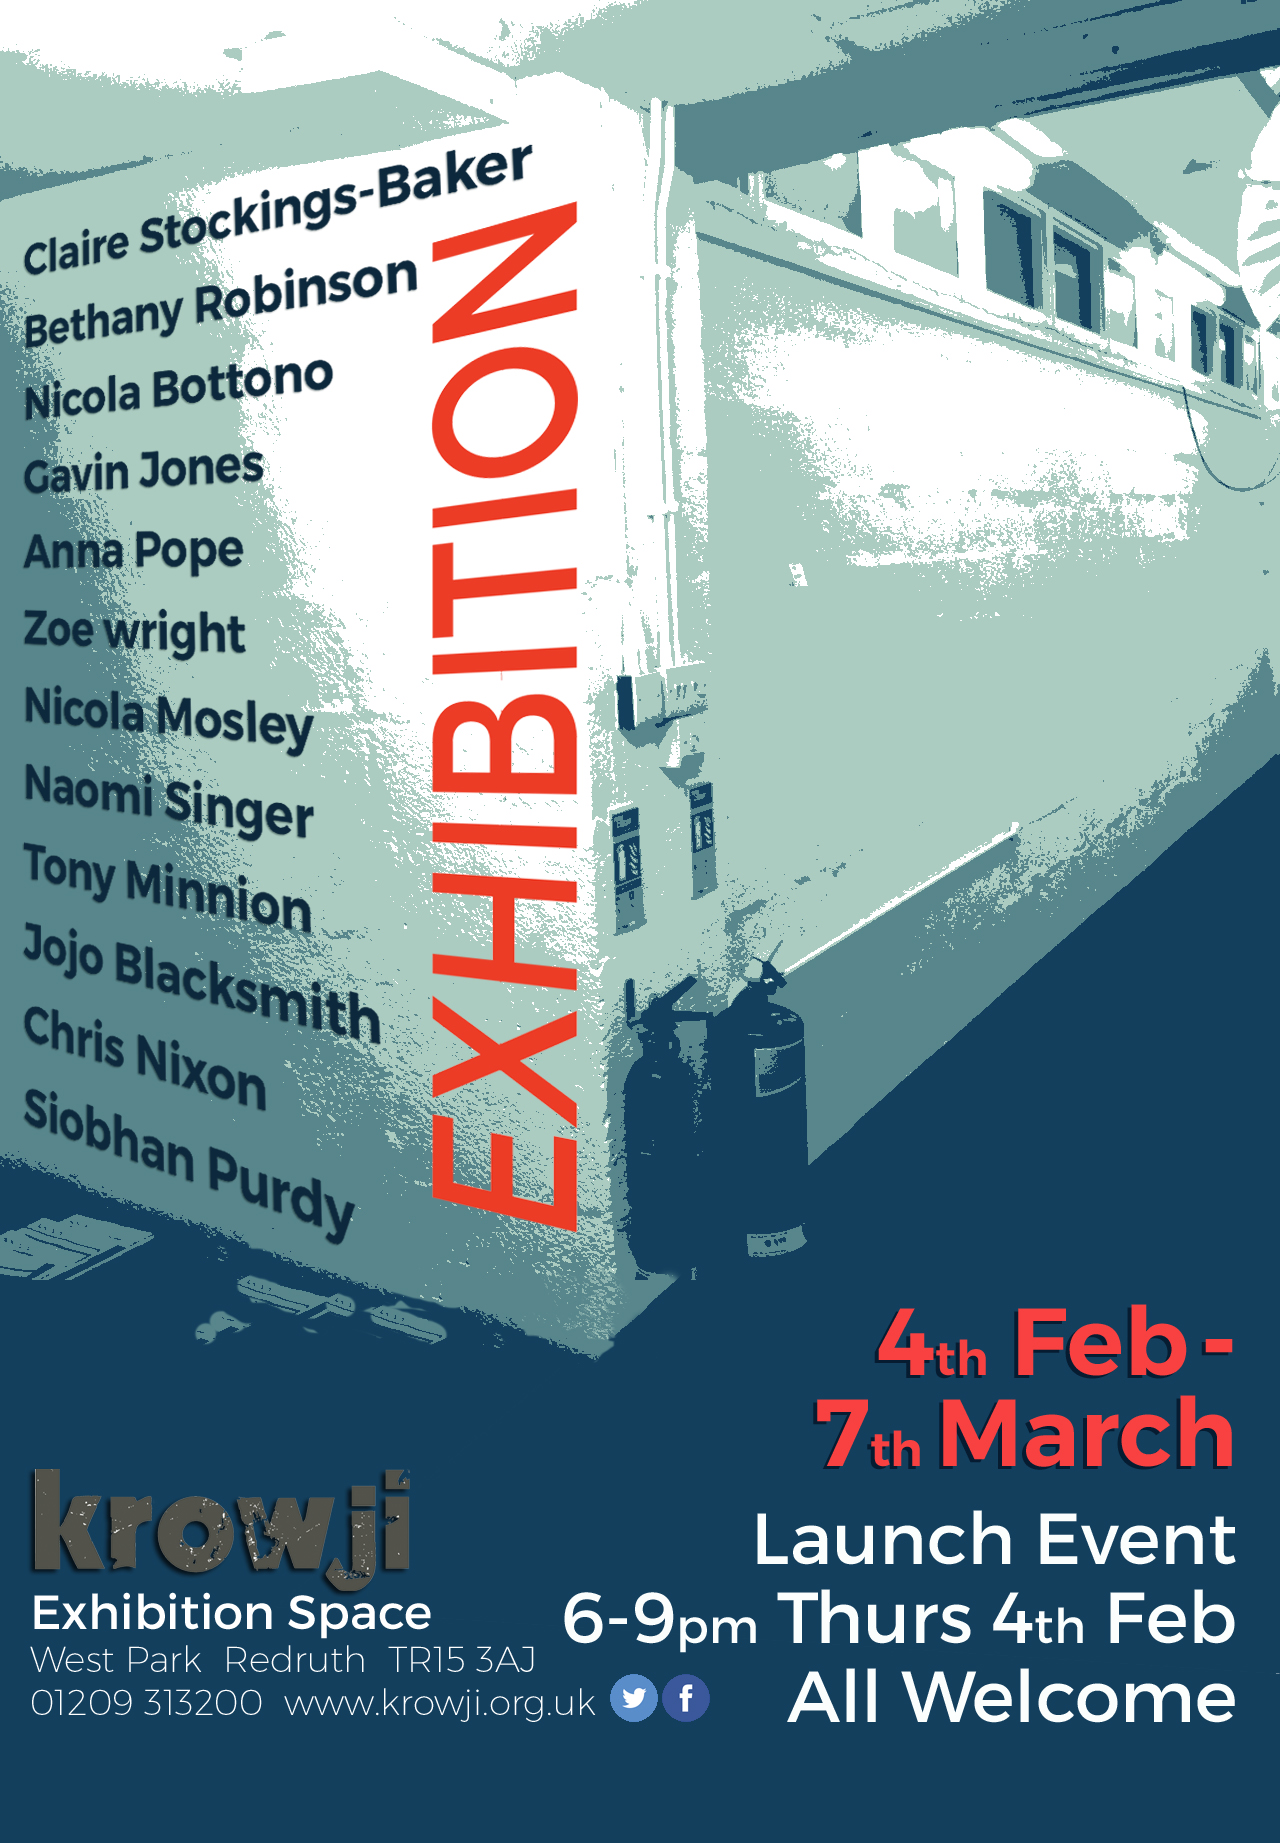 Krowji exhibiton flyer